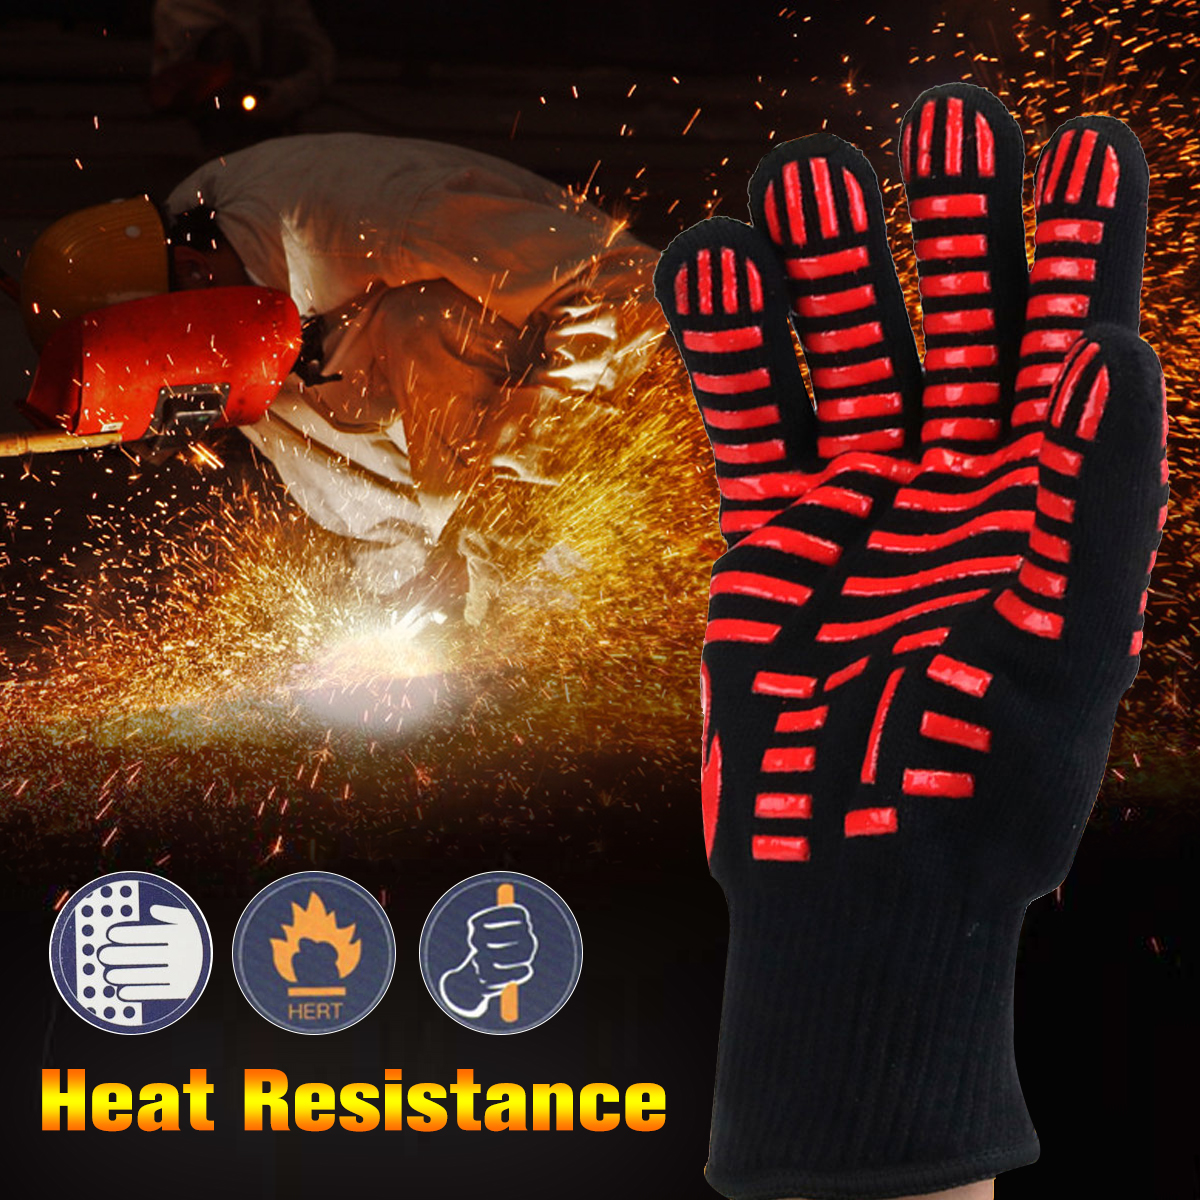 Fire Insulation Safety Gloves Heat Resistant Glove Aramid BBQ Glove Oven Kitchen Glove Direct Supply Forearm Protection fire insulation safety gloves heat resistant glove aramid bbq glove oven kitchen glove direct supply forearm protection